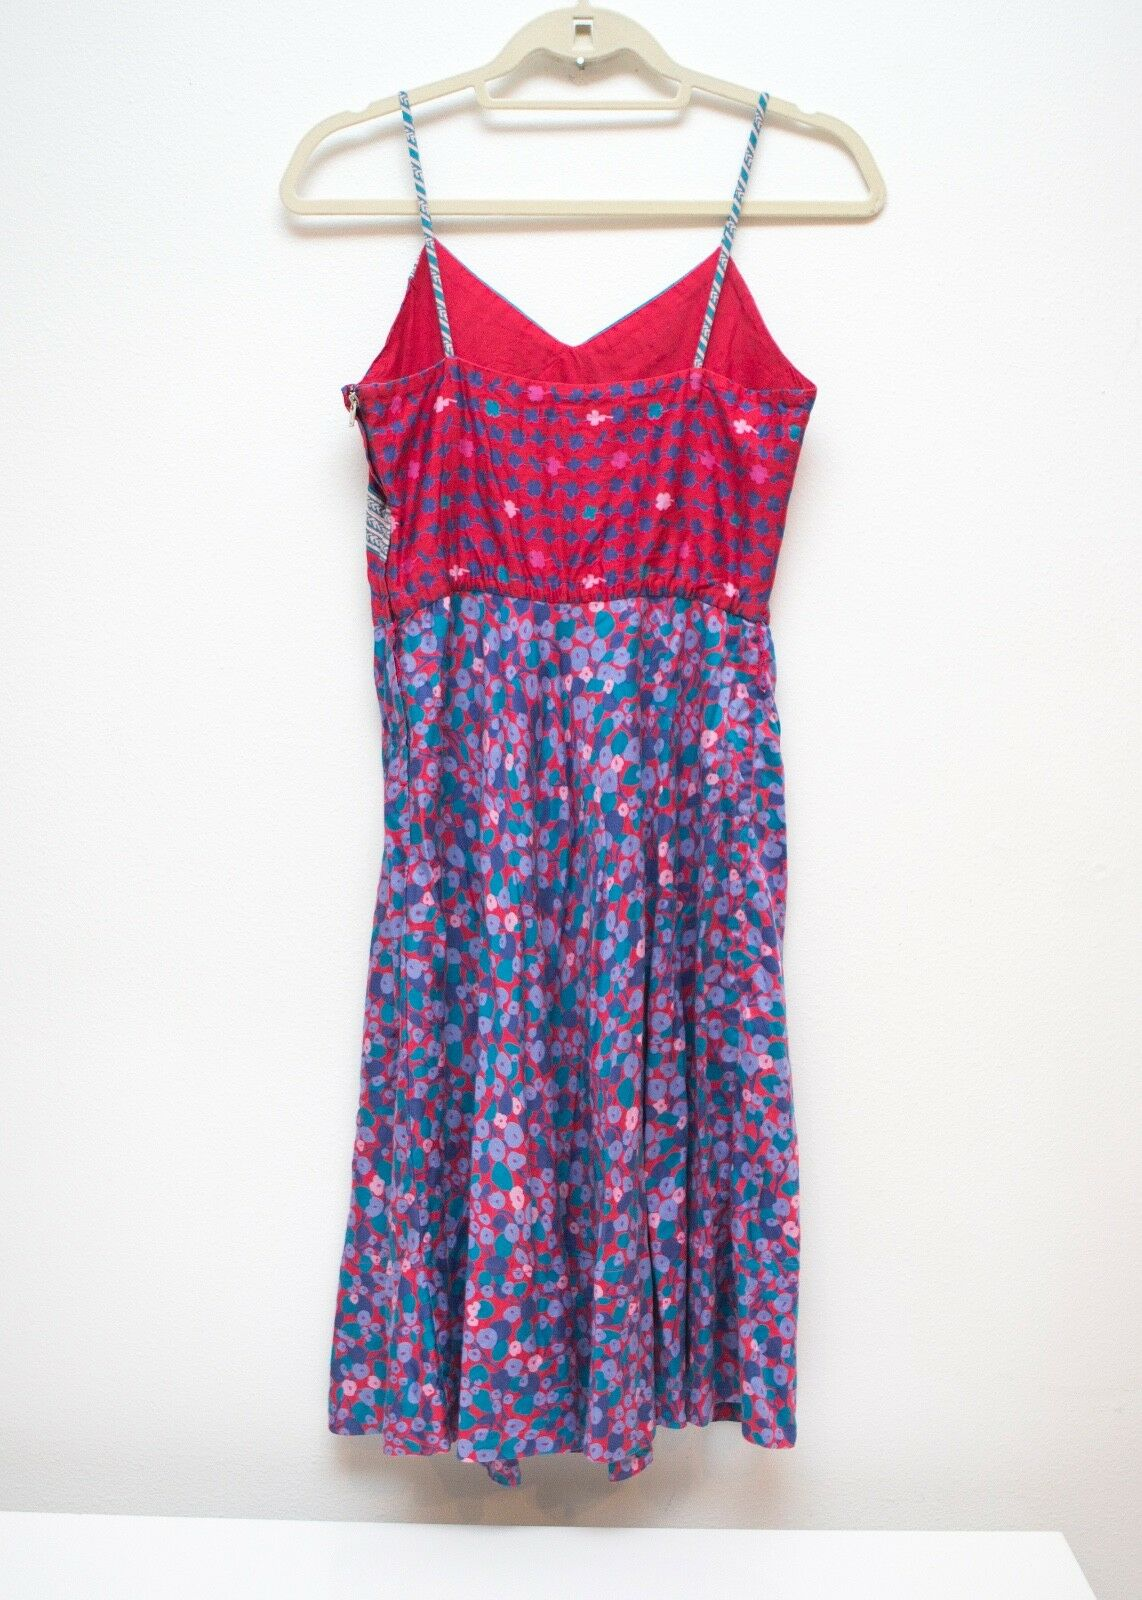 Marc by Marc Jacobs- Floral Fit & Flare Flare Flare Cotton Dress Sz 2 b06ac4